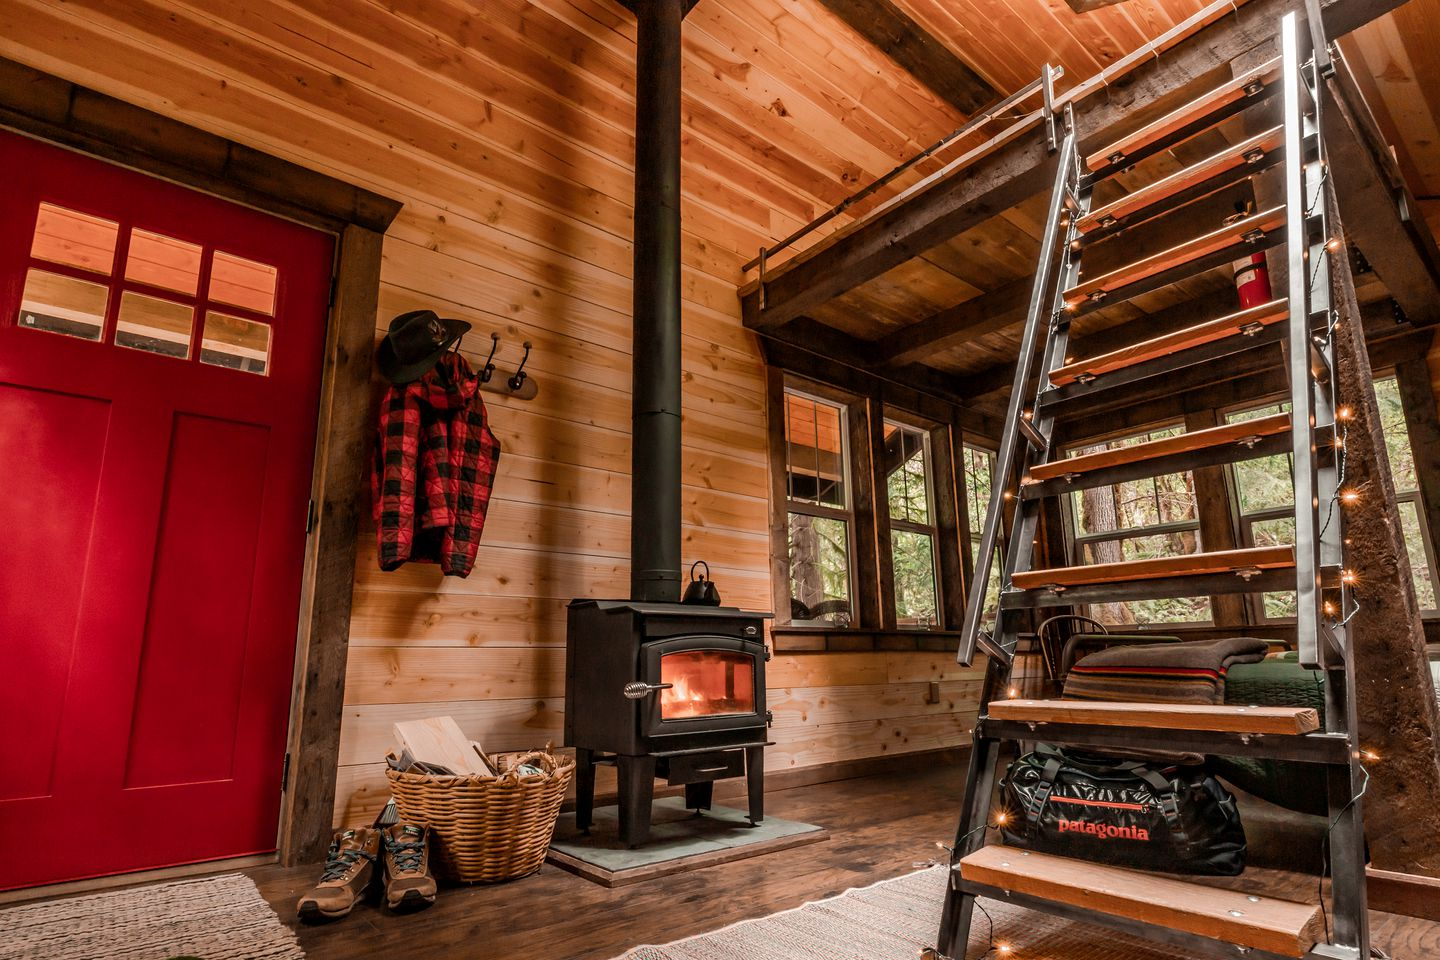 The cabin interior with the woodstove and ladder to the loft bed